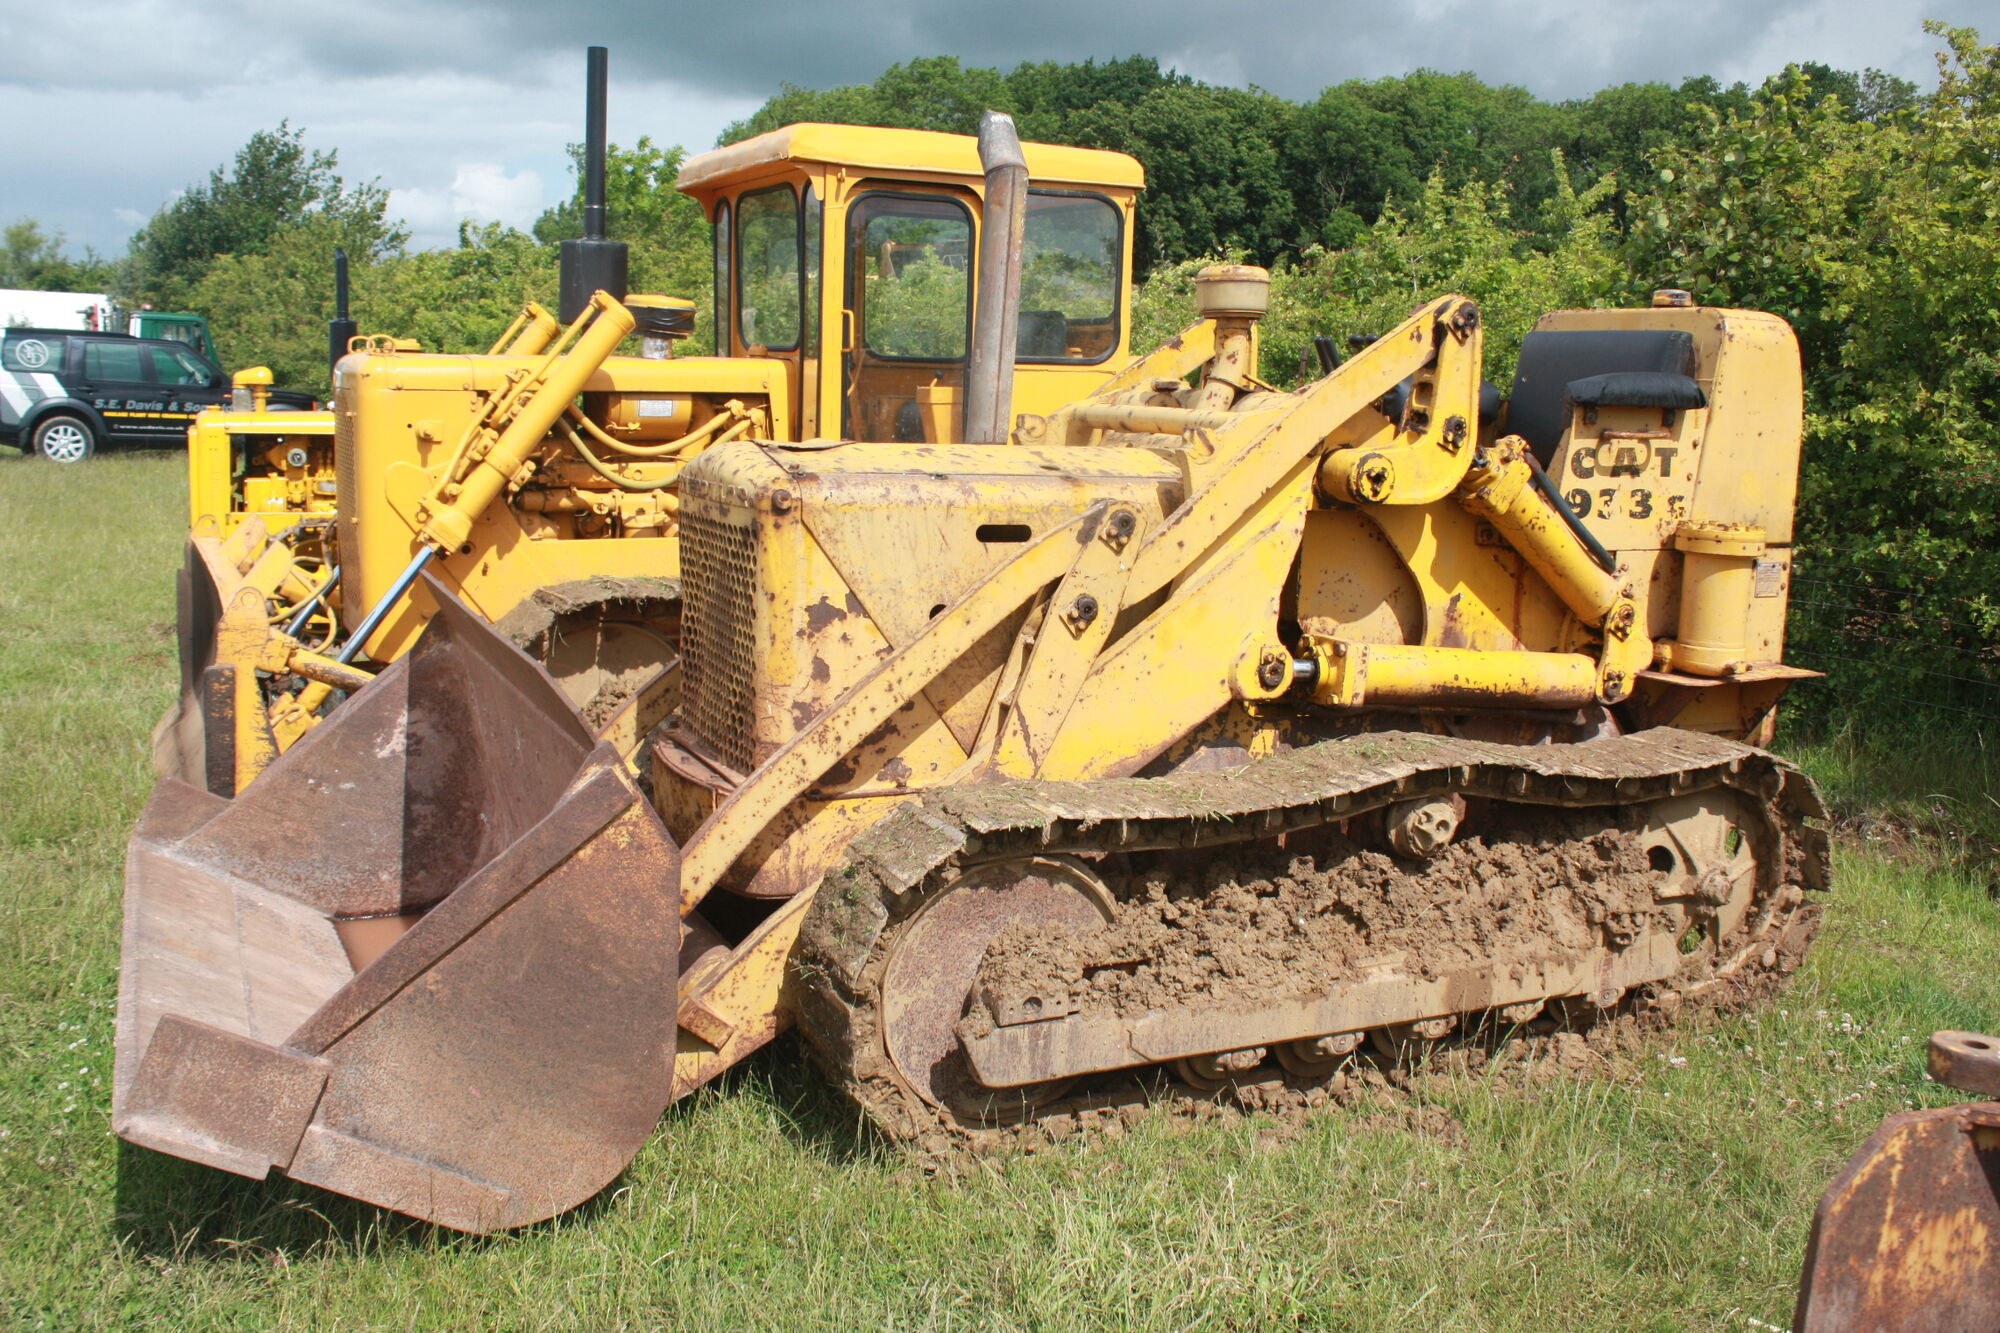 Caterpillar 933 Crawler Loader Tractor Construction Plant Wiki 1968 Bobcat Engine Diagram Fandom Powered By Wikia